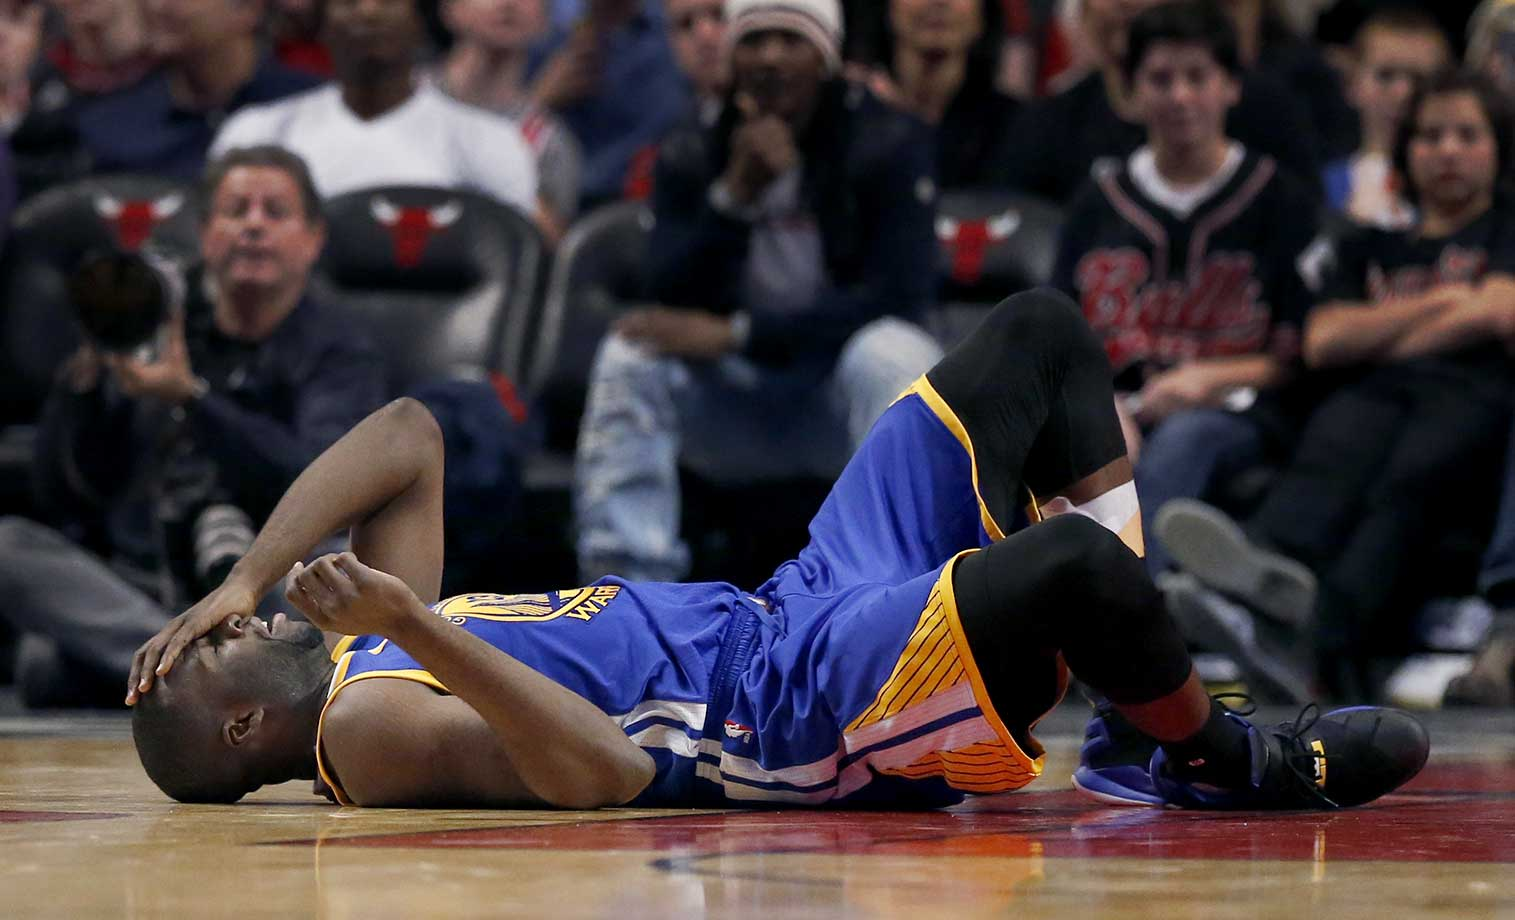 Golden State Warriors forward Draymond Green lays on the court after getting struck by Chicago Bulls forward Taj Gibson in Chicago. The Warriors won 125-94.